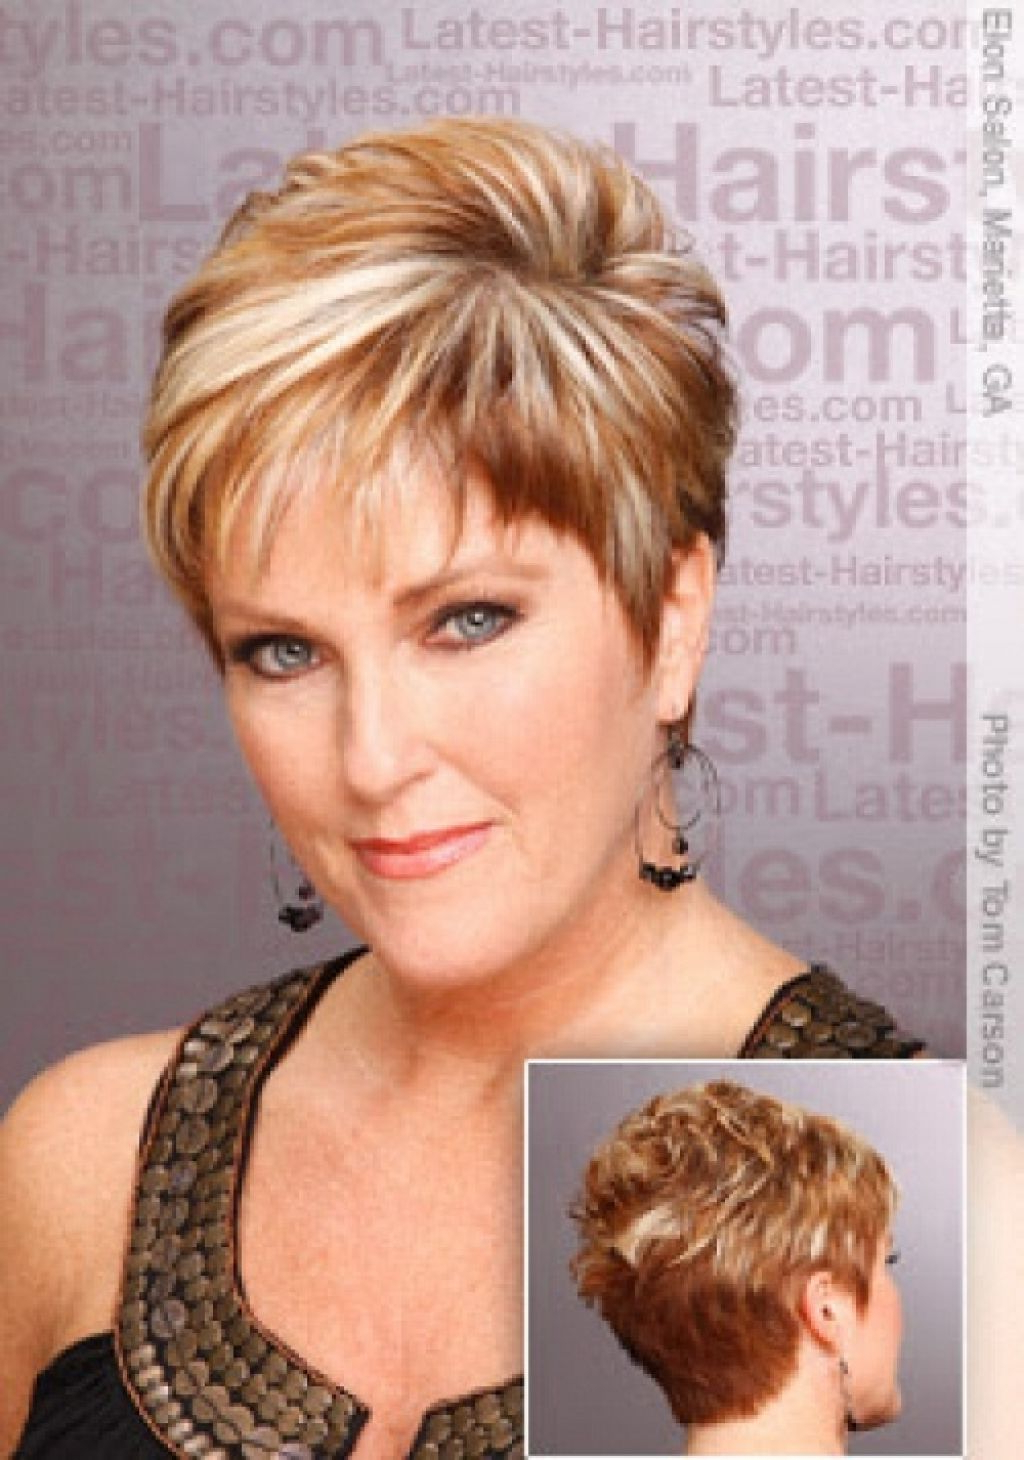 Short Hairstyles For Women Over 40 With Round Faces – Hairstyle For Throughout Short Hairstyles For Petite Faces (View 5 of 25)